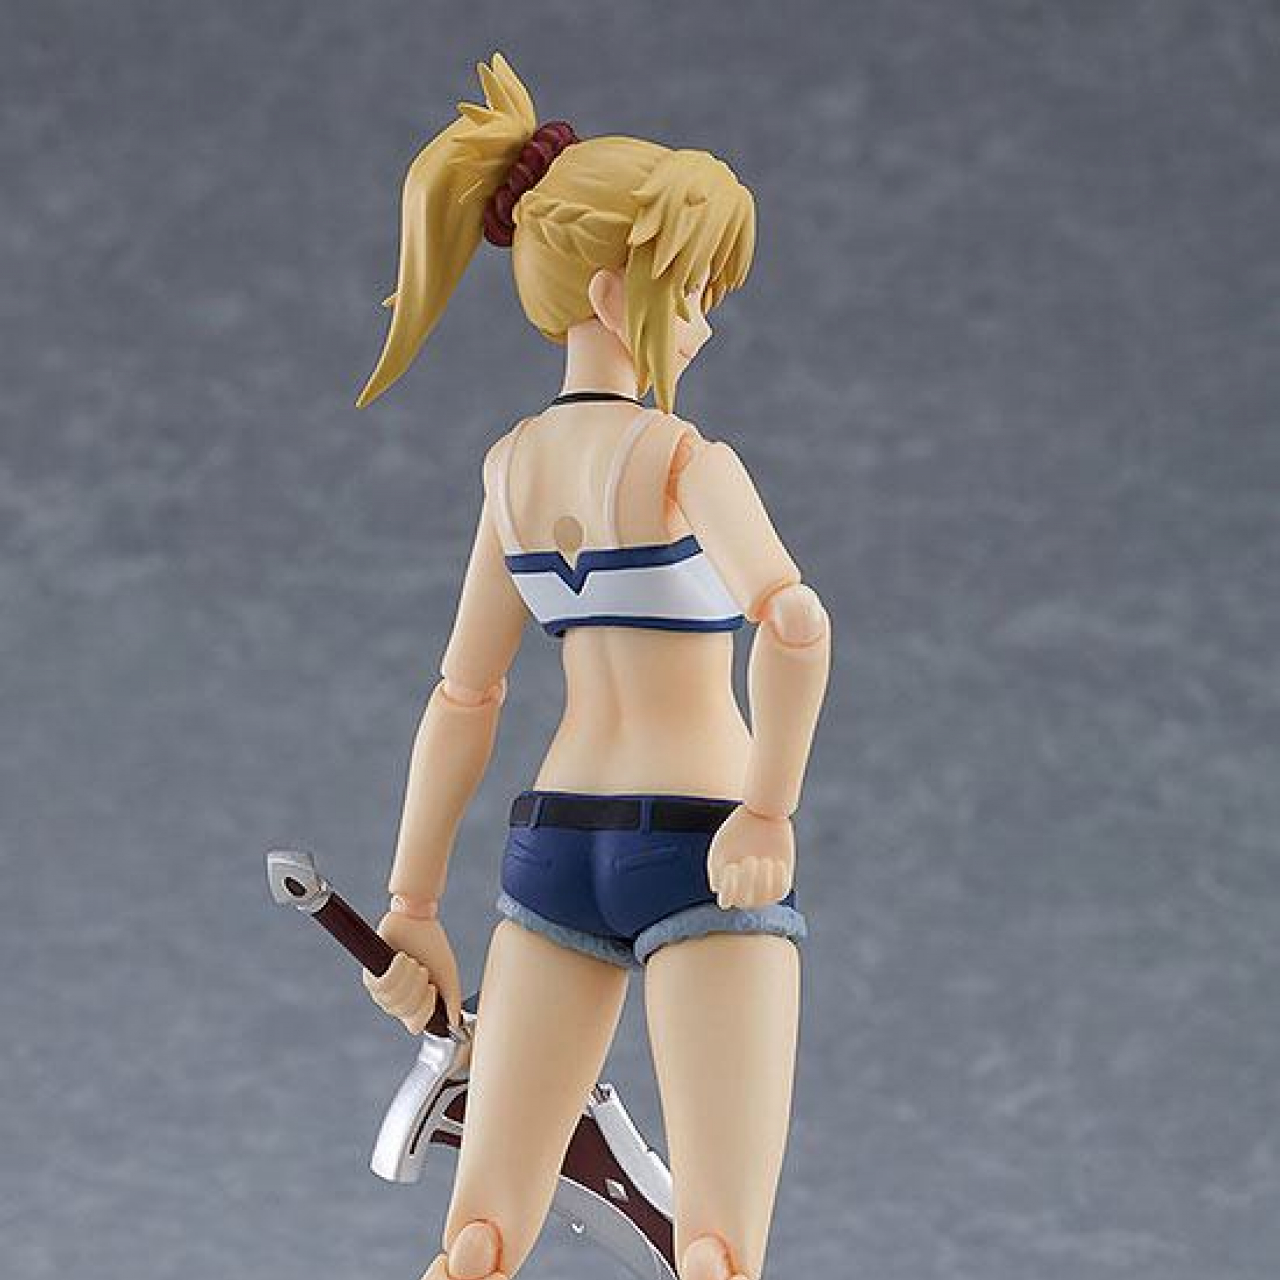 Fate/Apocrypha Figma Action Figure Saber of Red Casual Ver. 14 cm